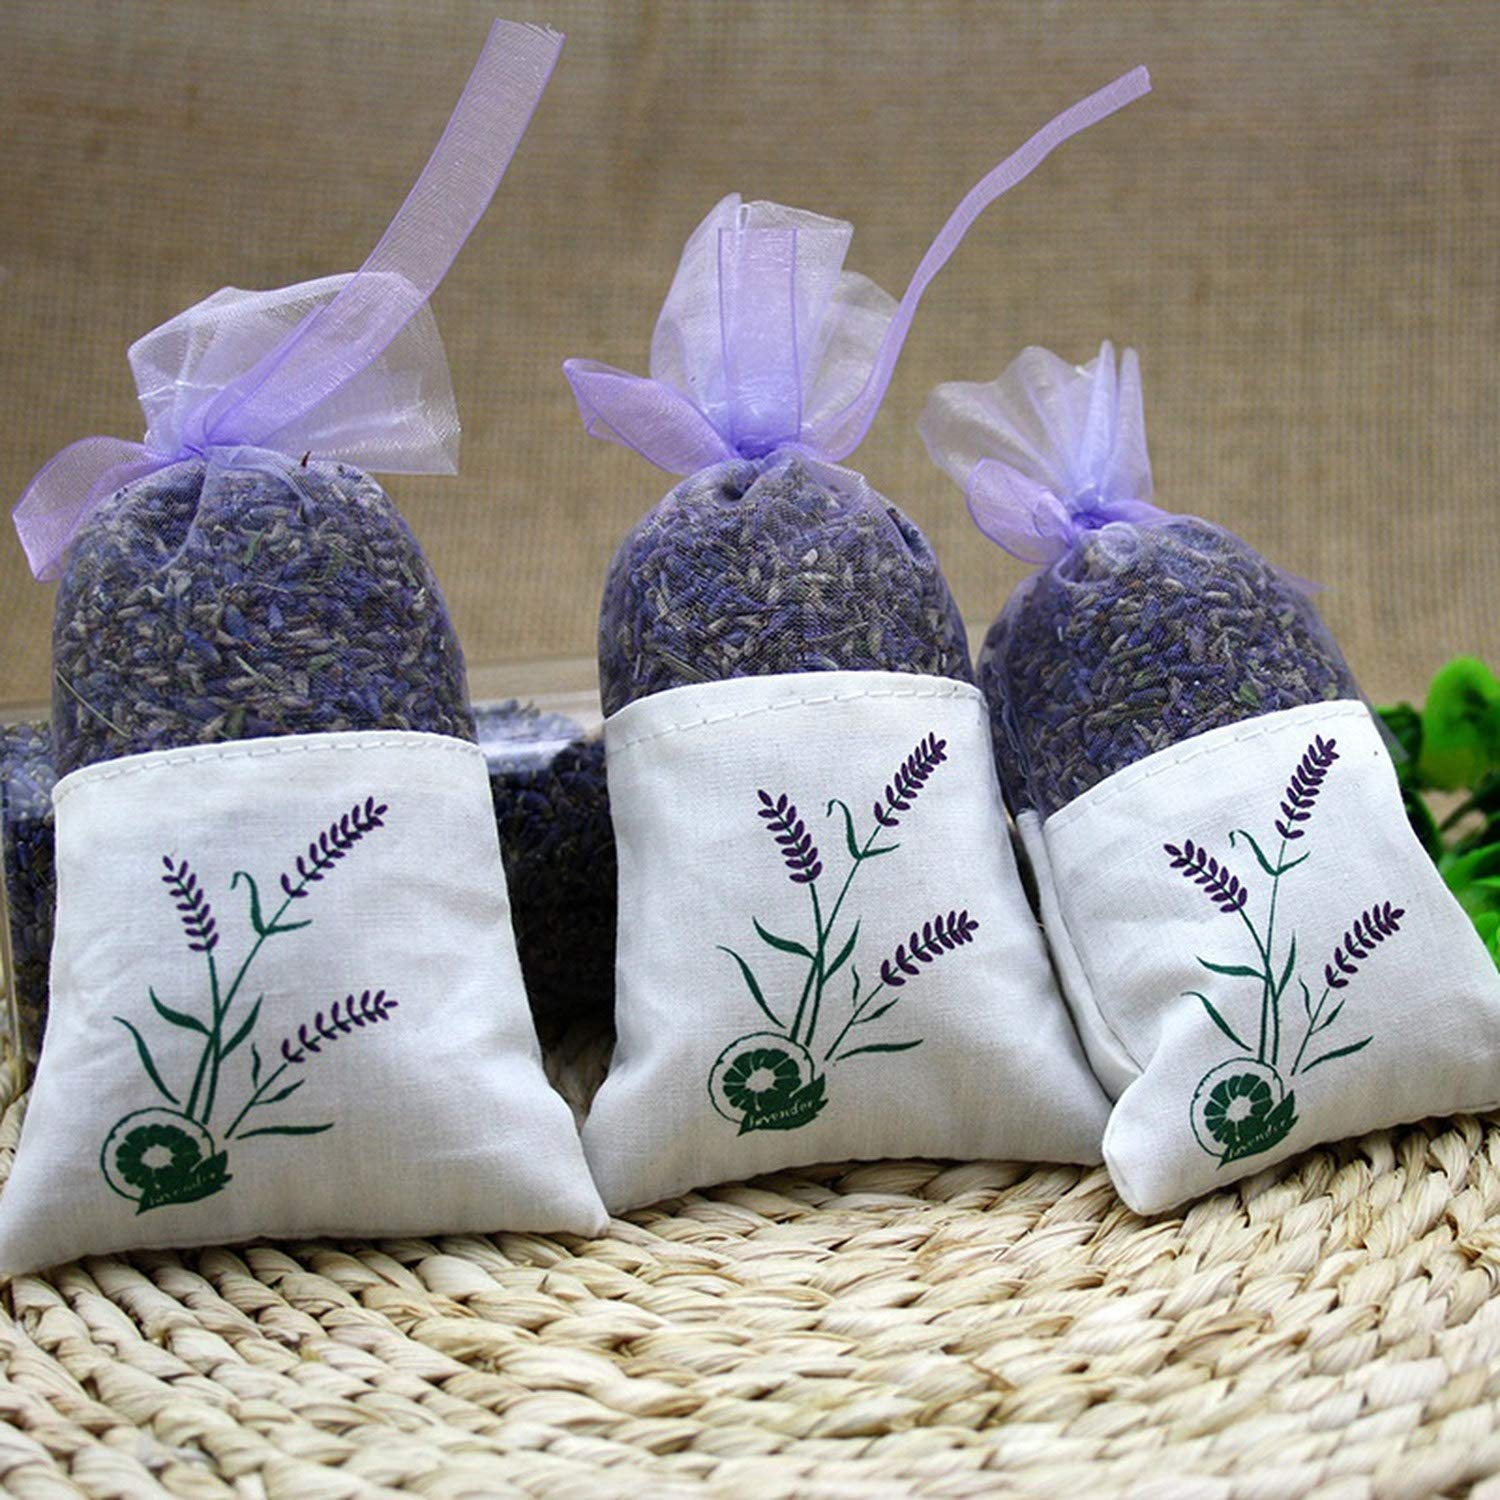 yuexianghui Natural Dried Flowers Lavender Bud Sachet Decorative Flower Aromatic Air Fresh Living Room Drawer,6 Pcs by yuexianghui (Image #6)